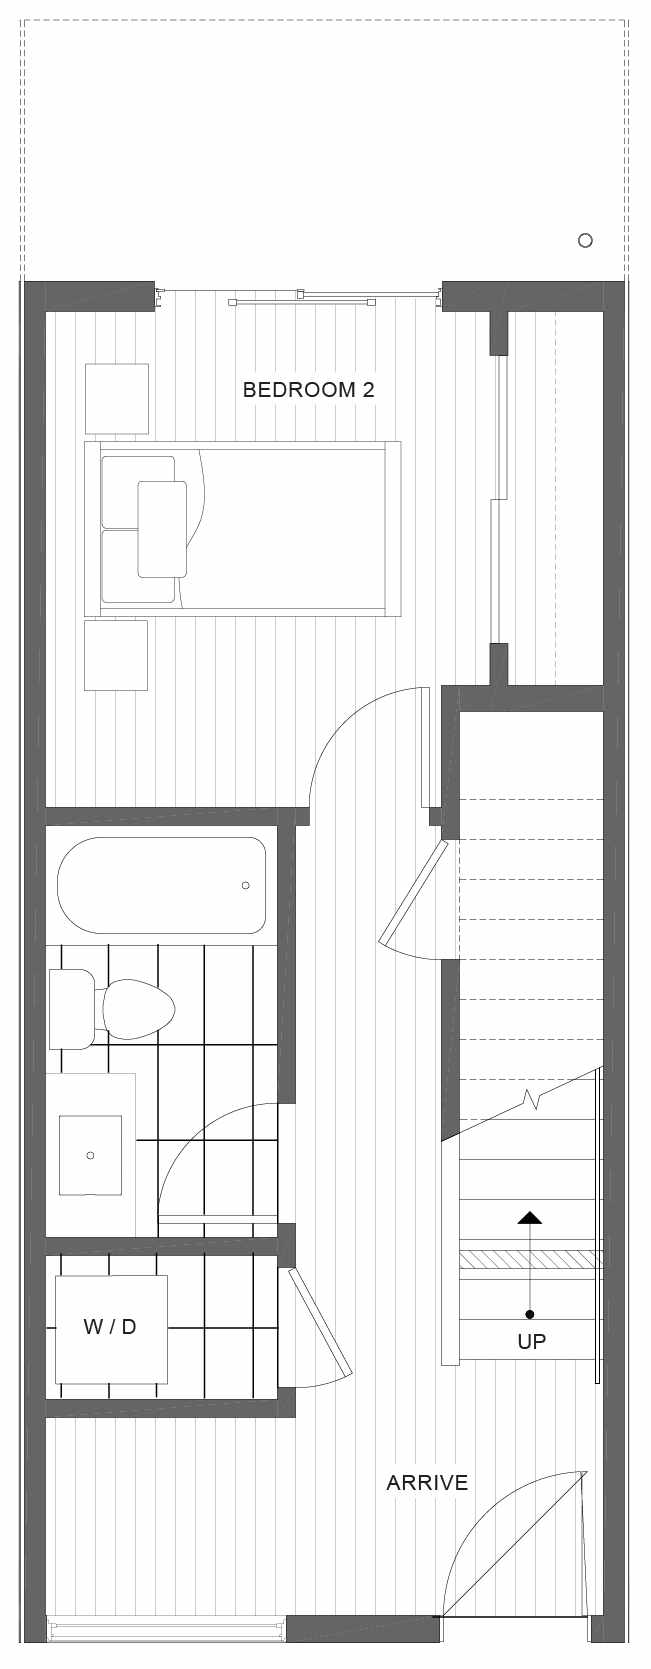 First Floor Plan of 1105E 14th Ave in the Corazon Central Townhomes